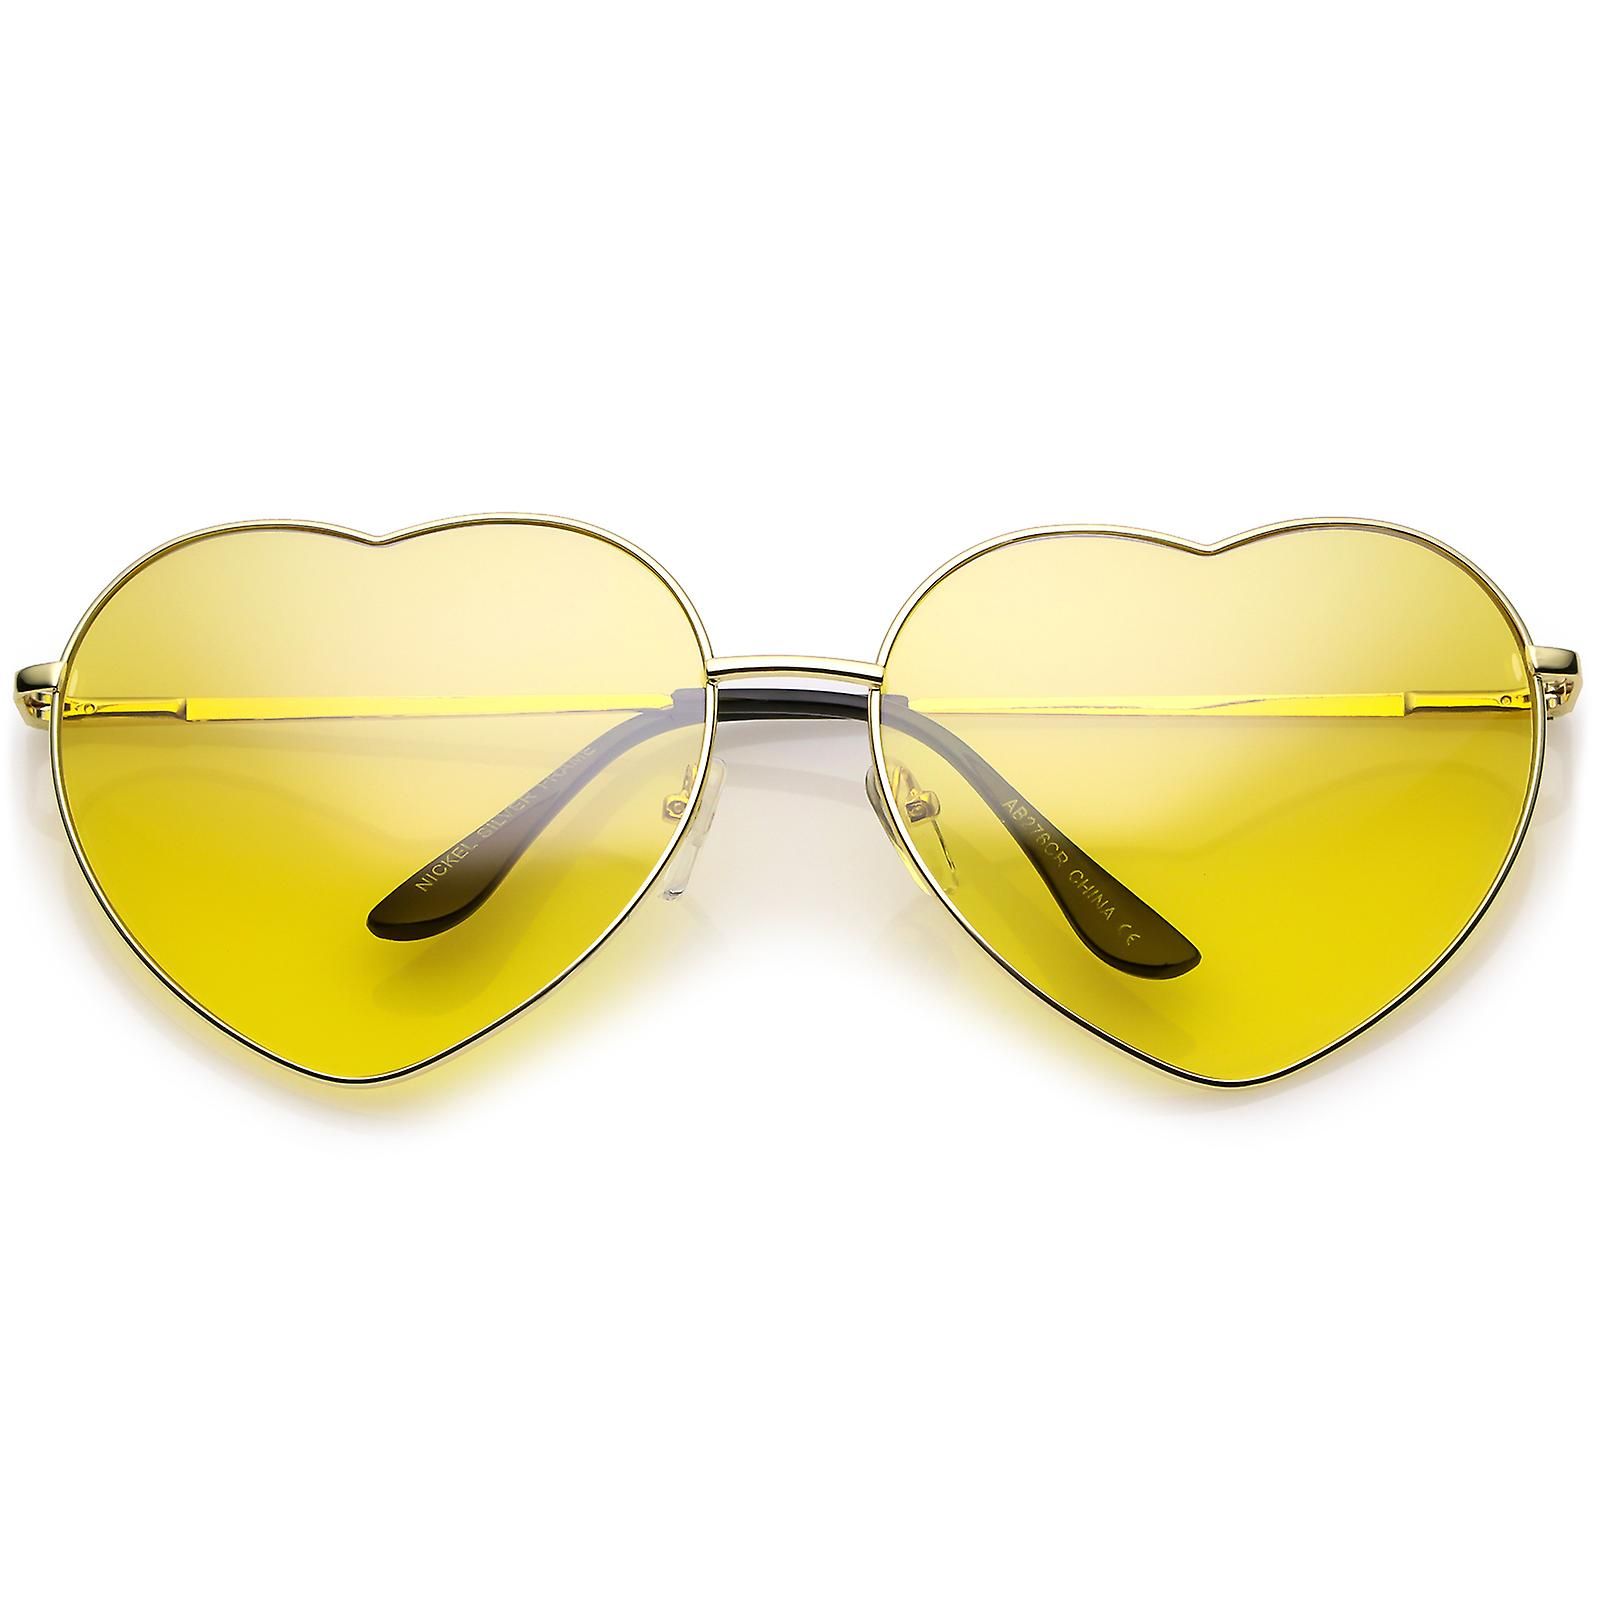 b70d90adb6 Oversize Metal Heart Sunglasses With Thin Metal Arms Colored Lens 70mm